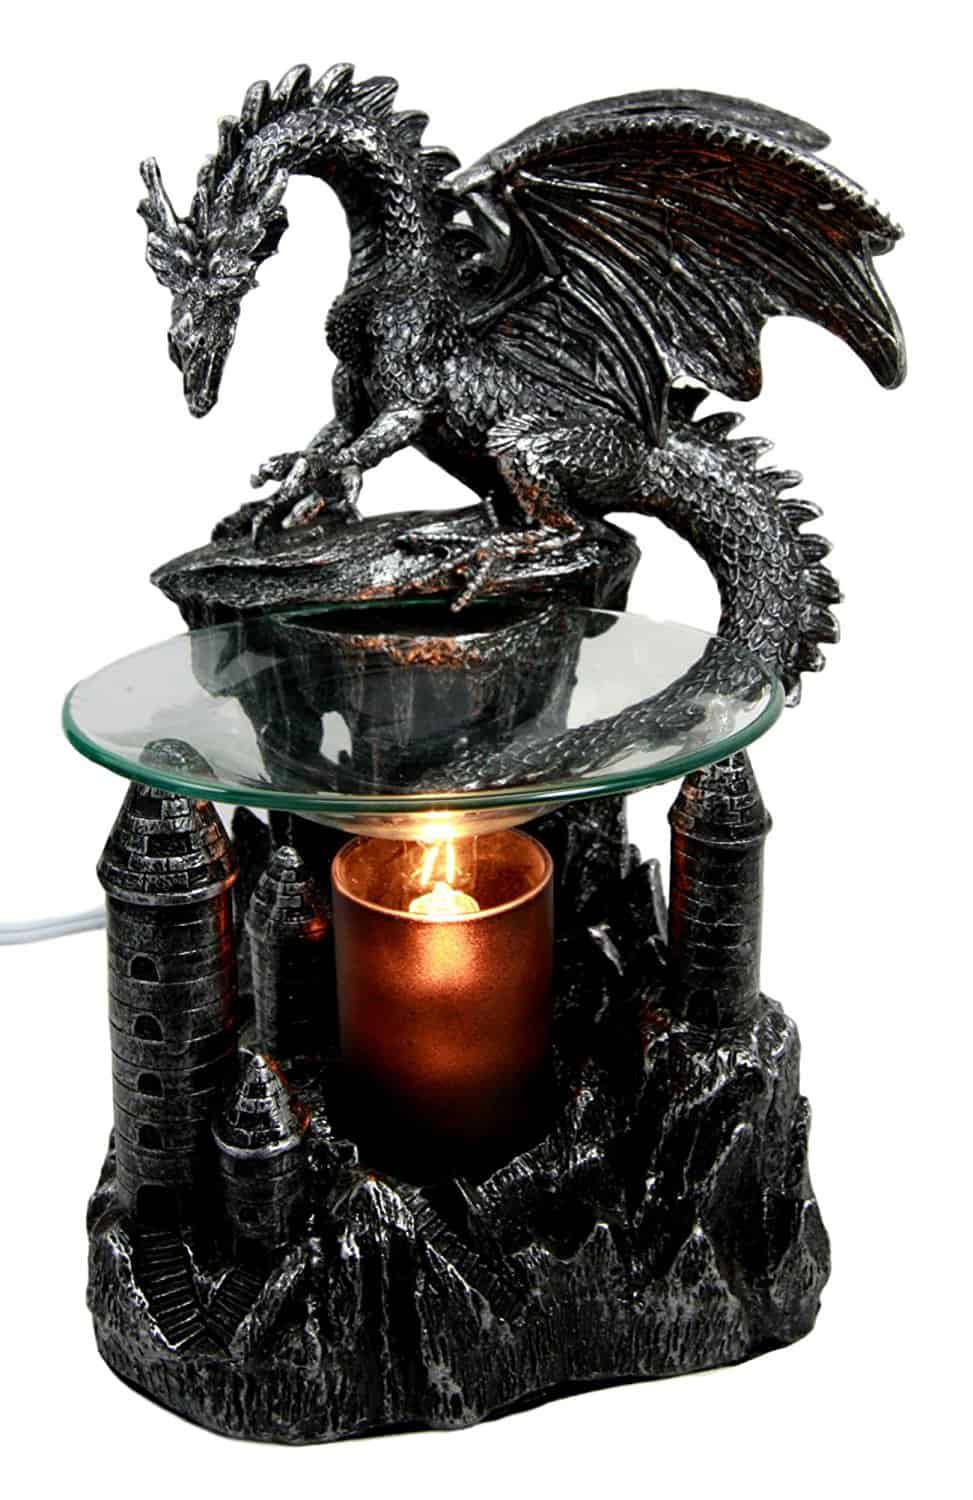 25 Game Of Thrones Gift Ideas Best Collection Of Gift